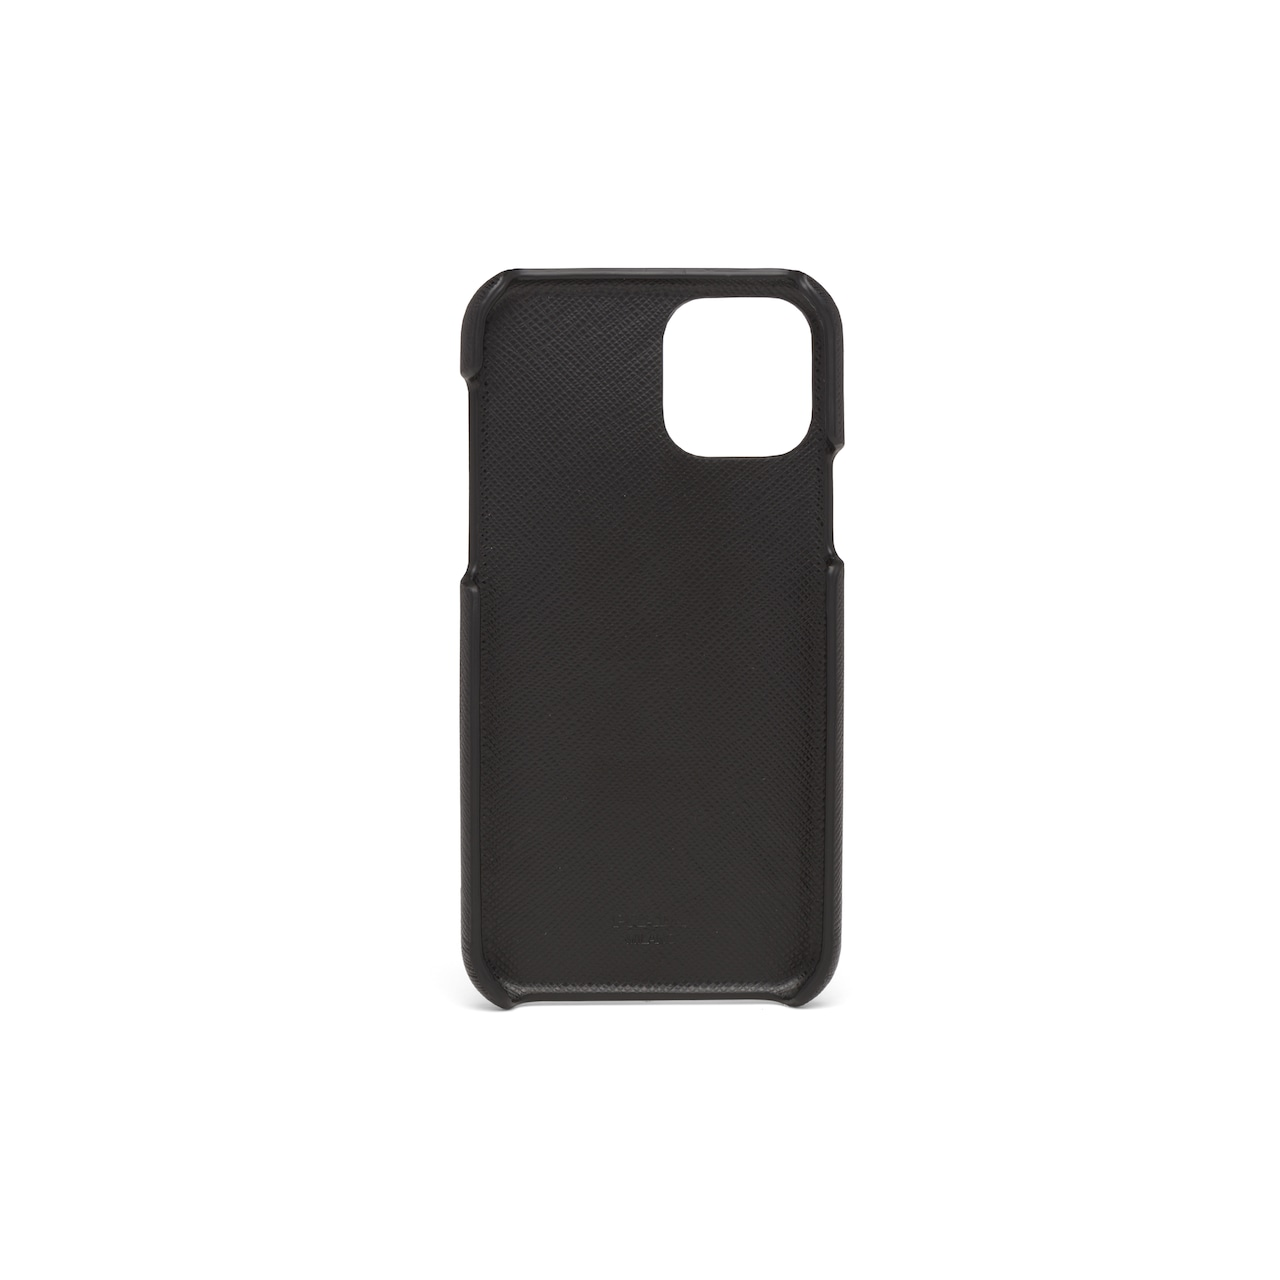 iPhone 11 Pro cover 3